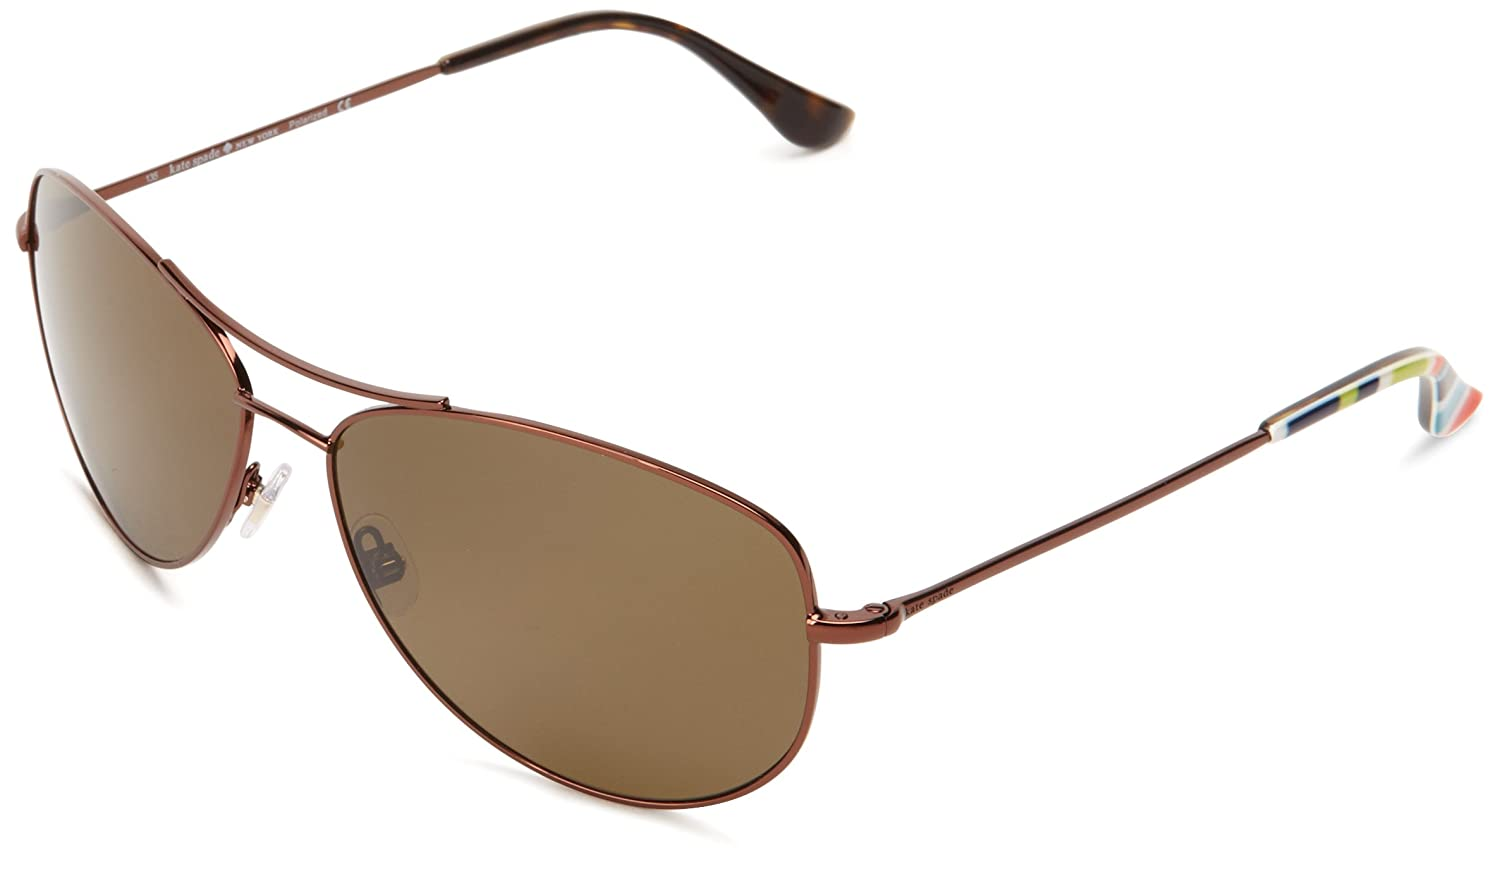 ebb164795d33 Amazon.com: Kate Spade Ally P/S Ally P/S Polarized Aviator Sunglasses,Brown,60  mm: Clothing